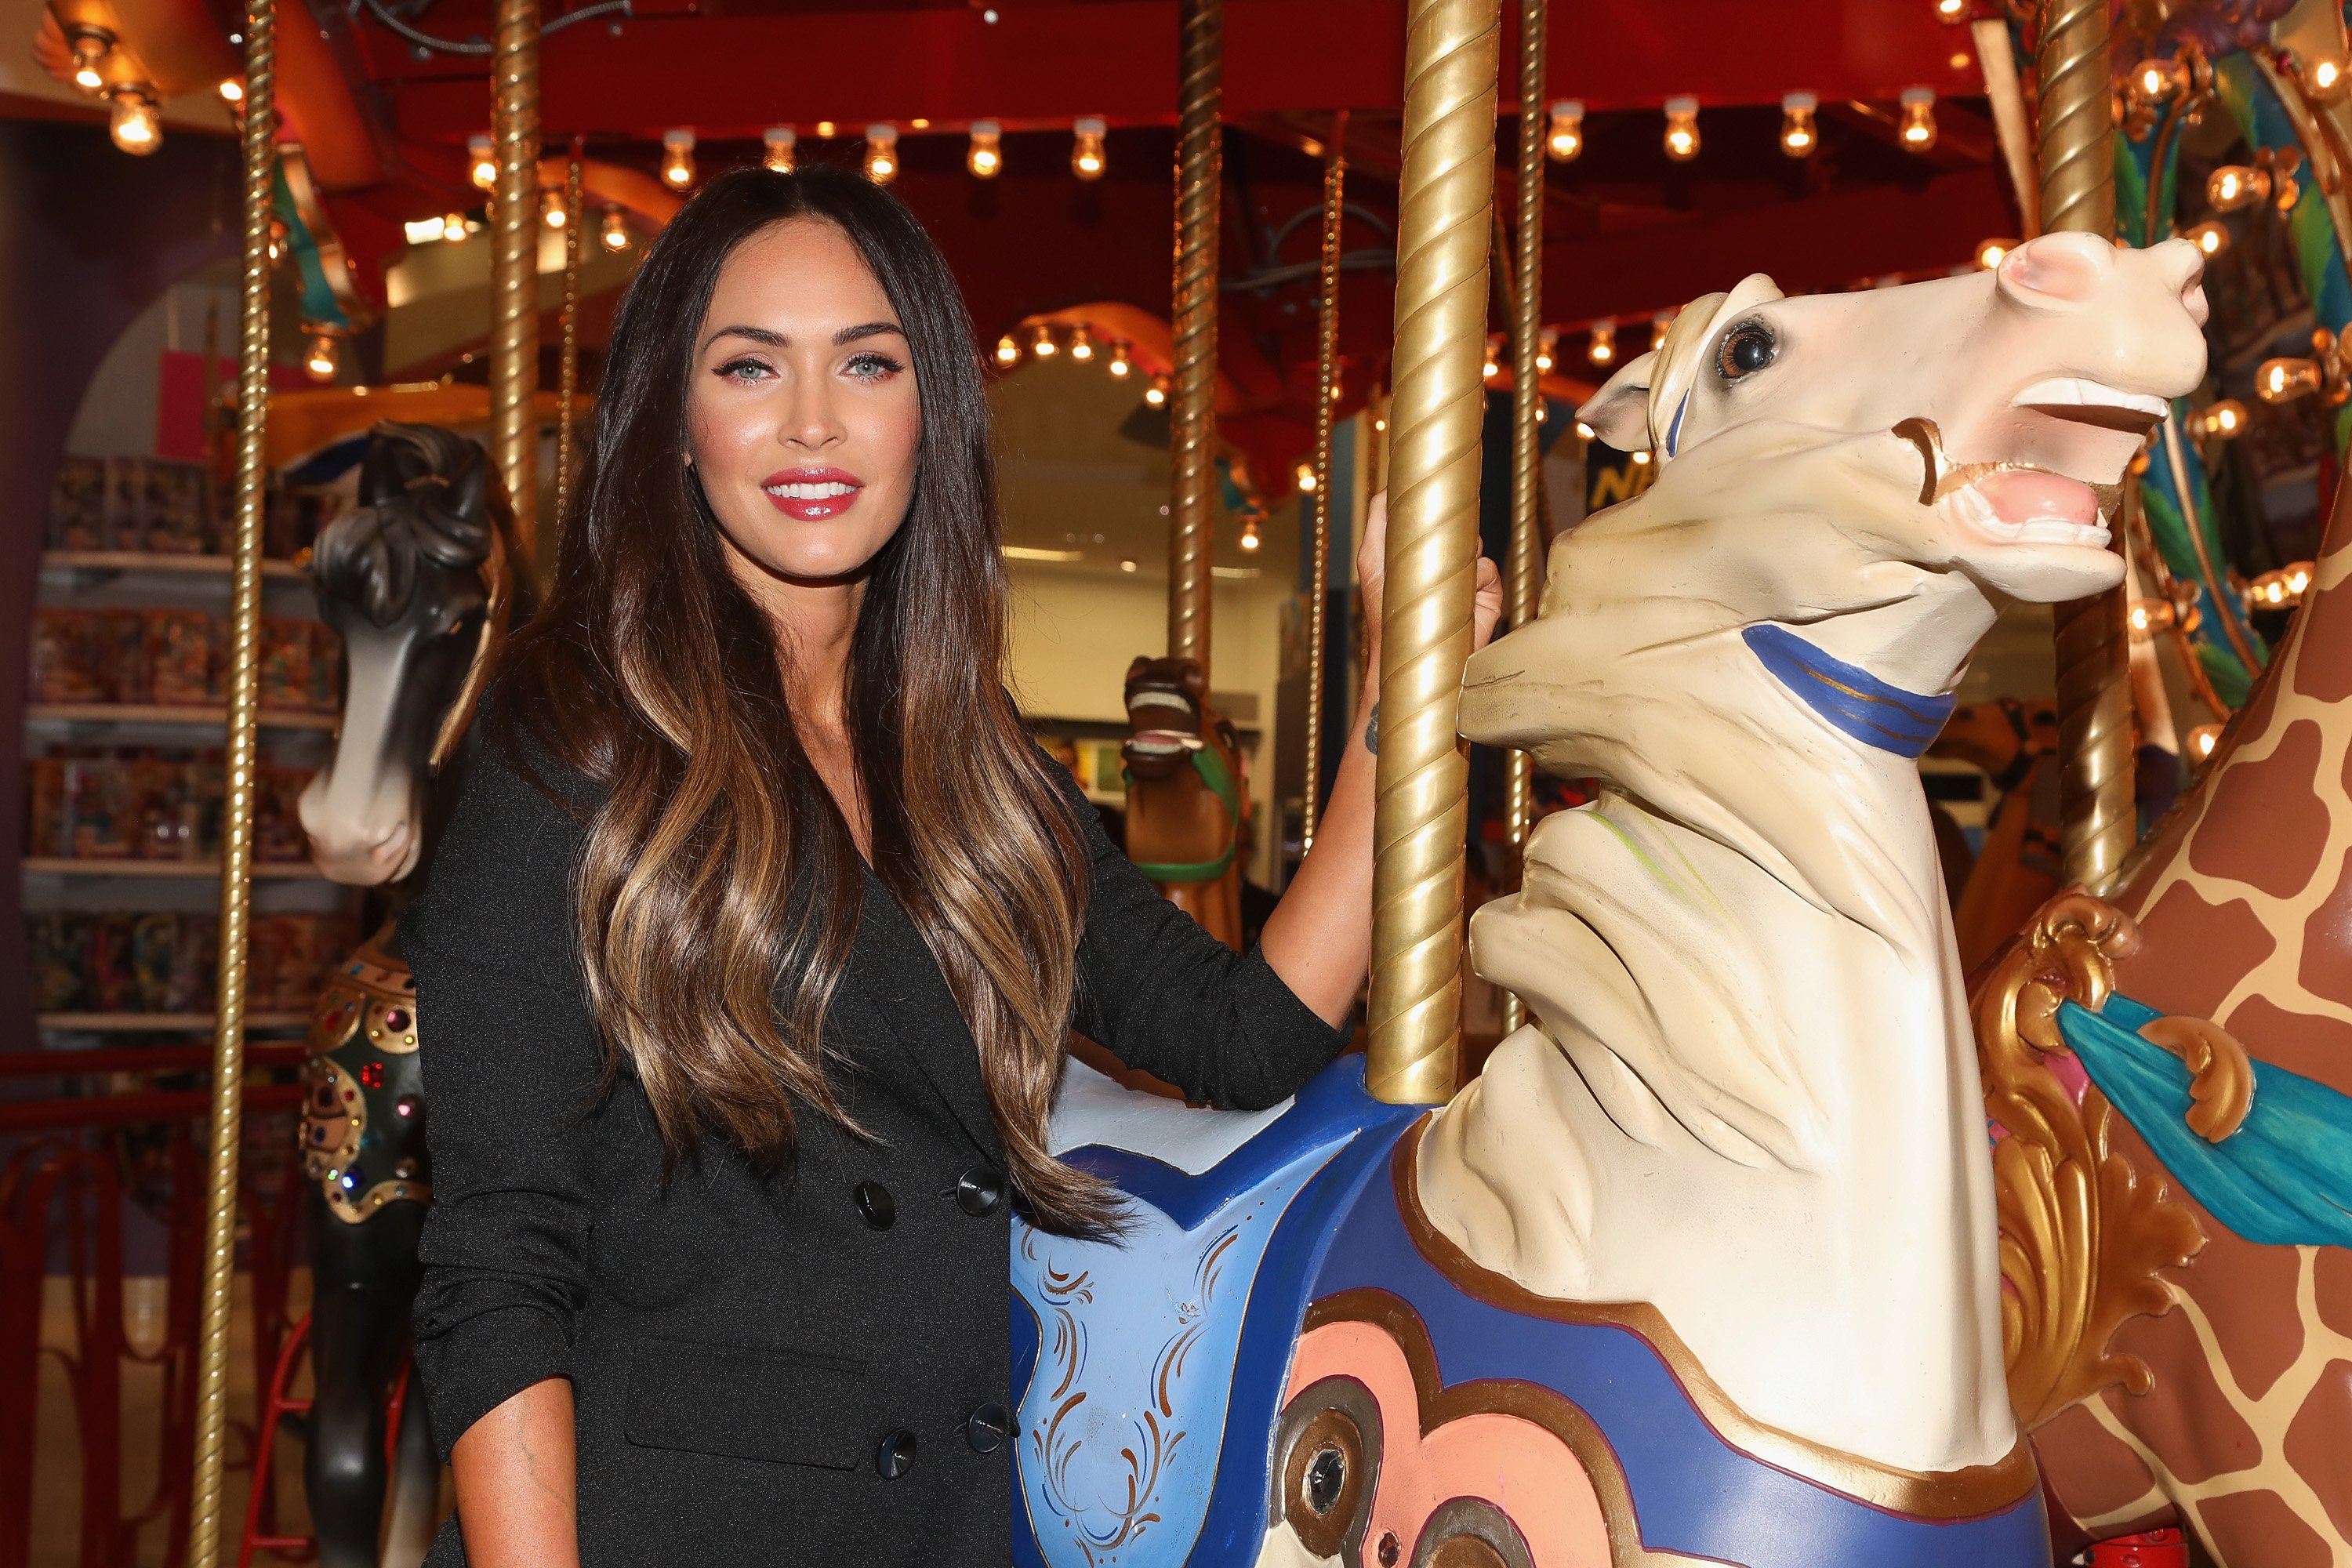 Megan Fox attends a store tour during the Liverpool Fashion Fest Autumn/Winter 2017 at Liverpool Polanco | Source: Getty Images